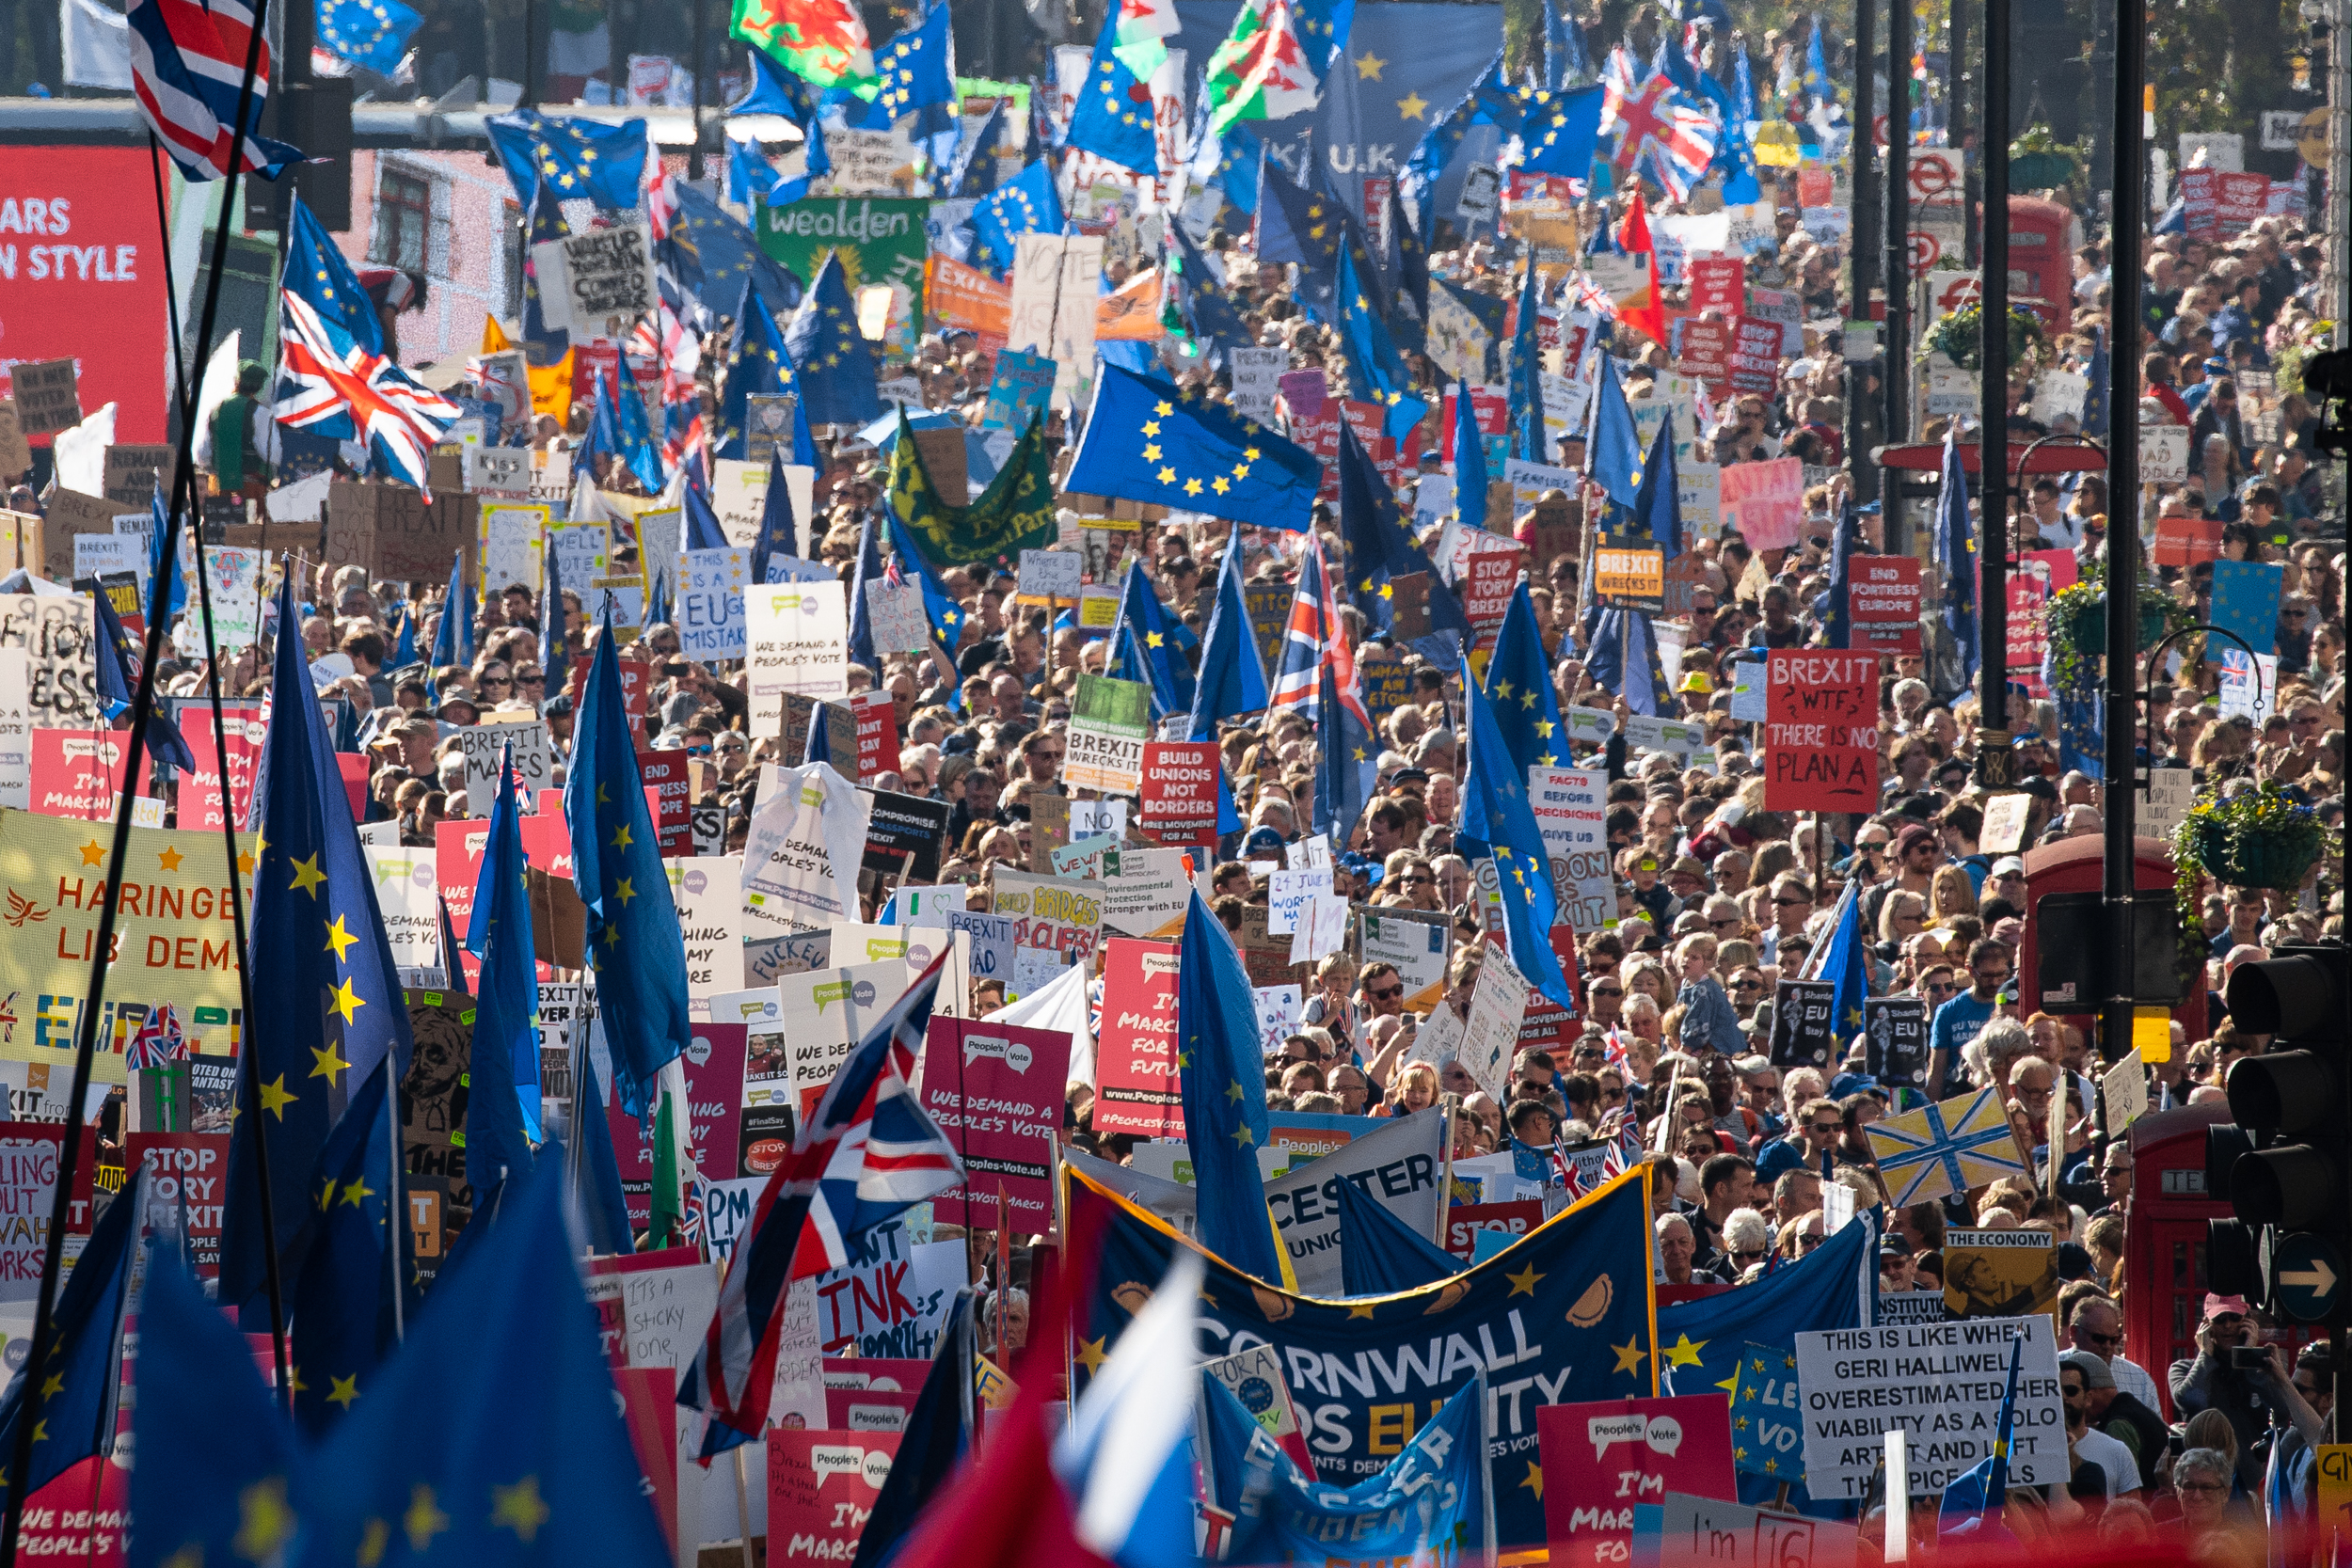 Demonstrators take part in the 'People's Vote' march in central London, campaigning for a public vote on the final Brexit deal. Organisers are expecting over 100,000 to attend the demonstration. October 2018 - London, UK